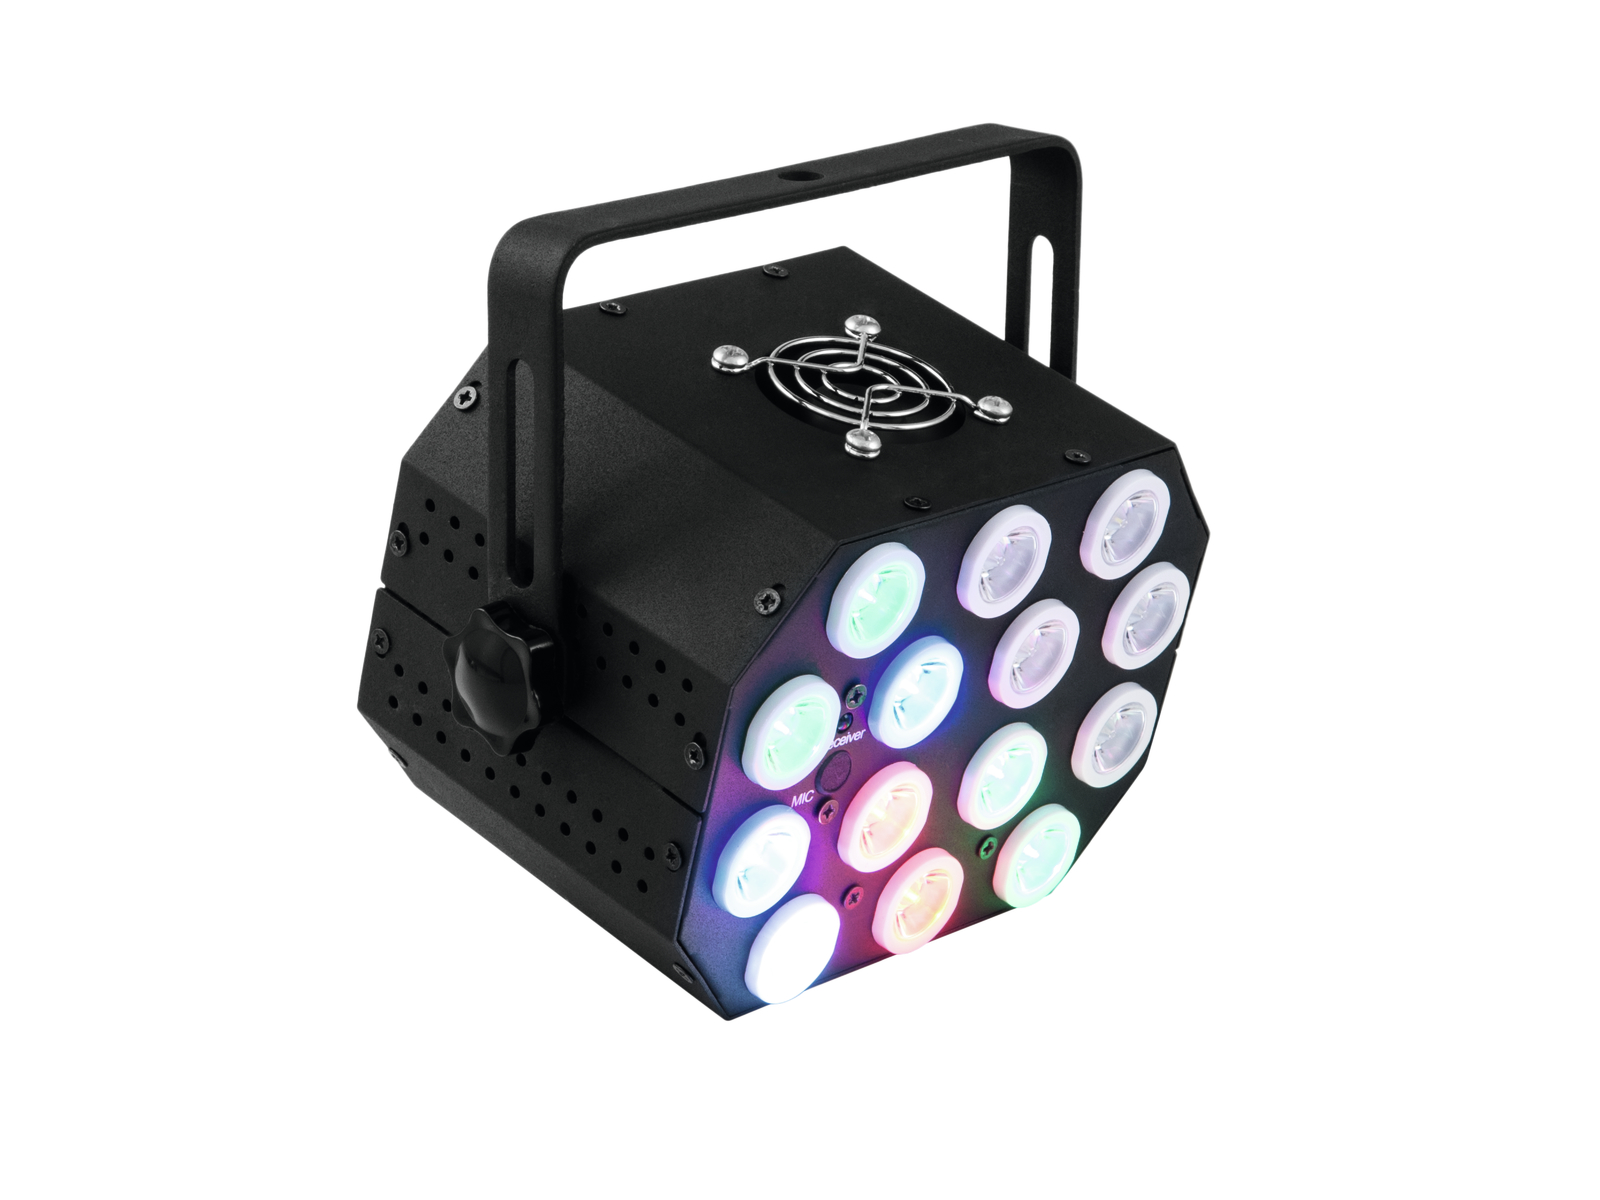 Eurolite LED PS-46 RGB 14x1W Spot